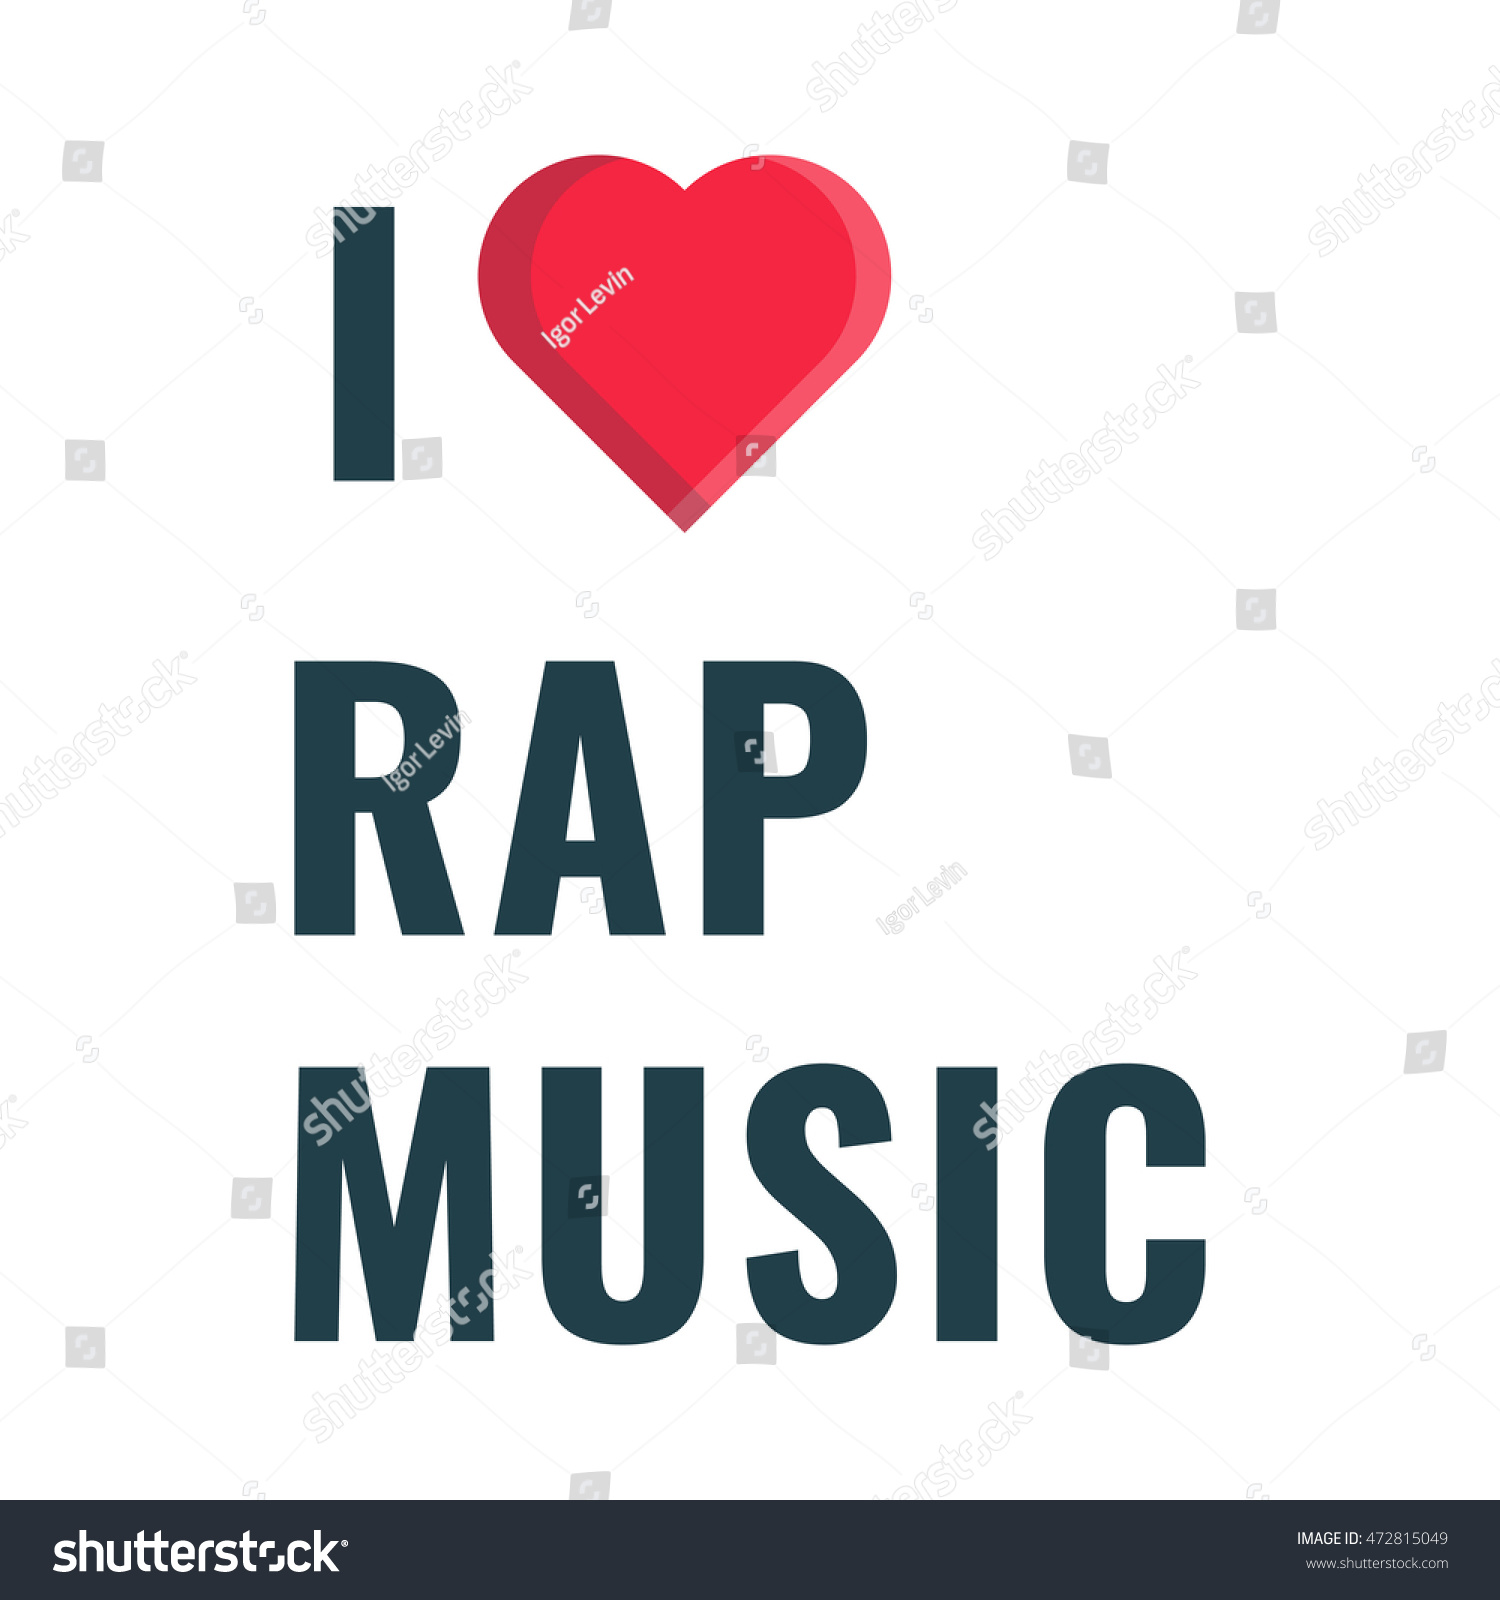 Love Rap Music Flat Vector Icon Stock Vector (Royalty Free) 472815049